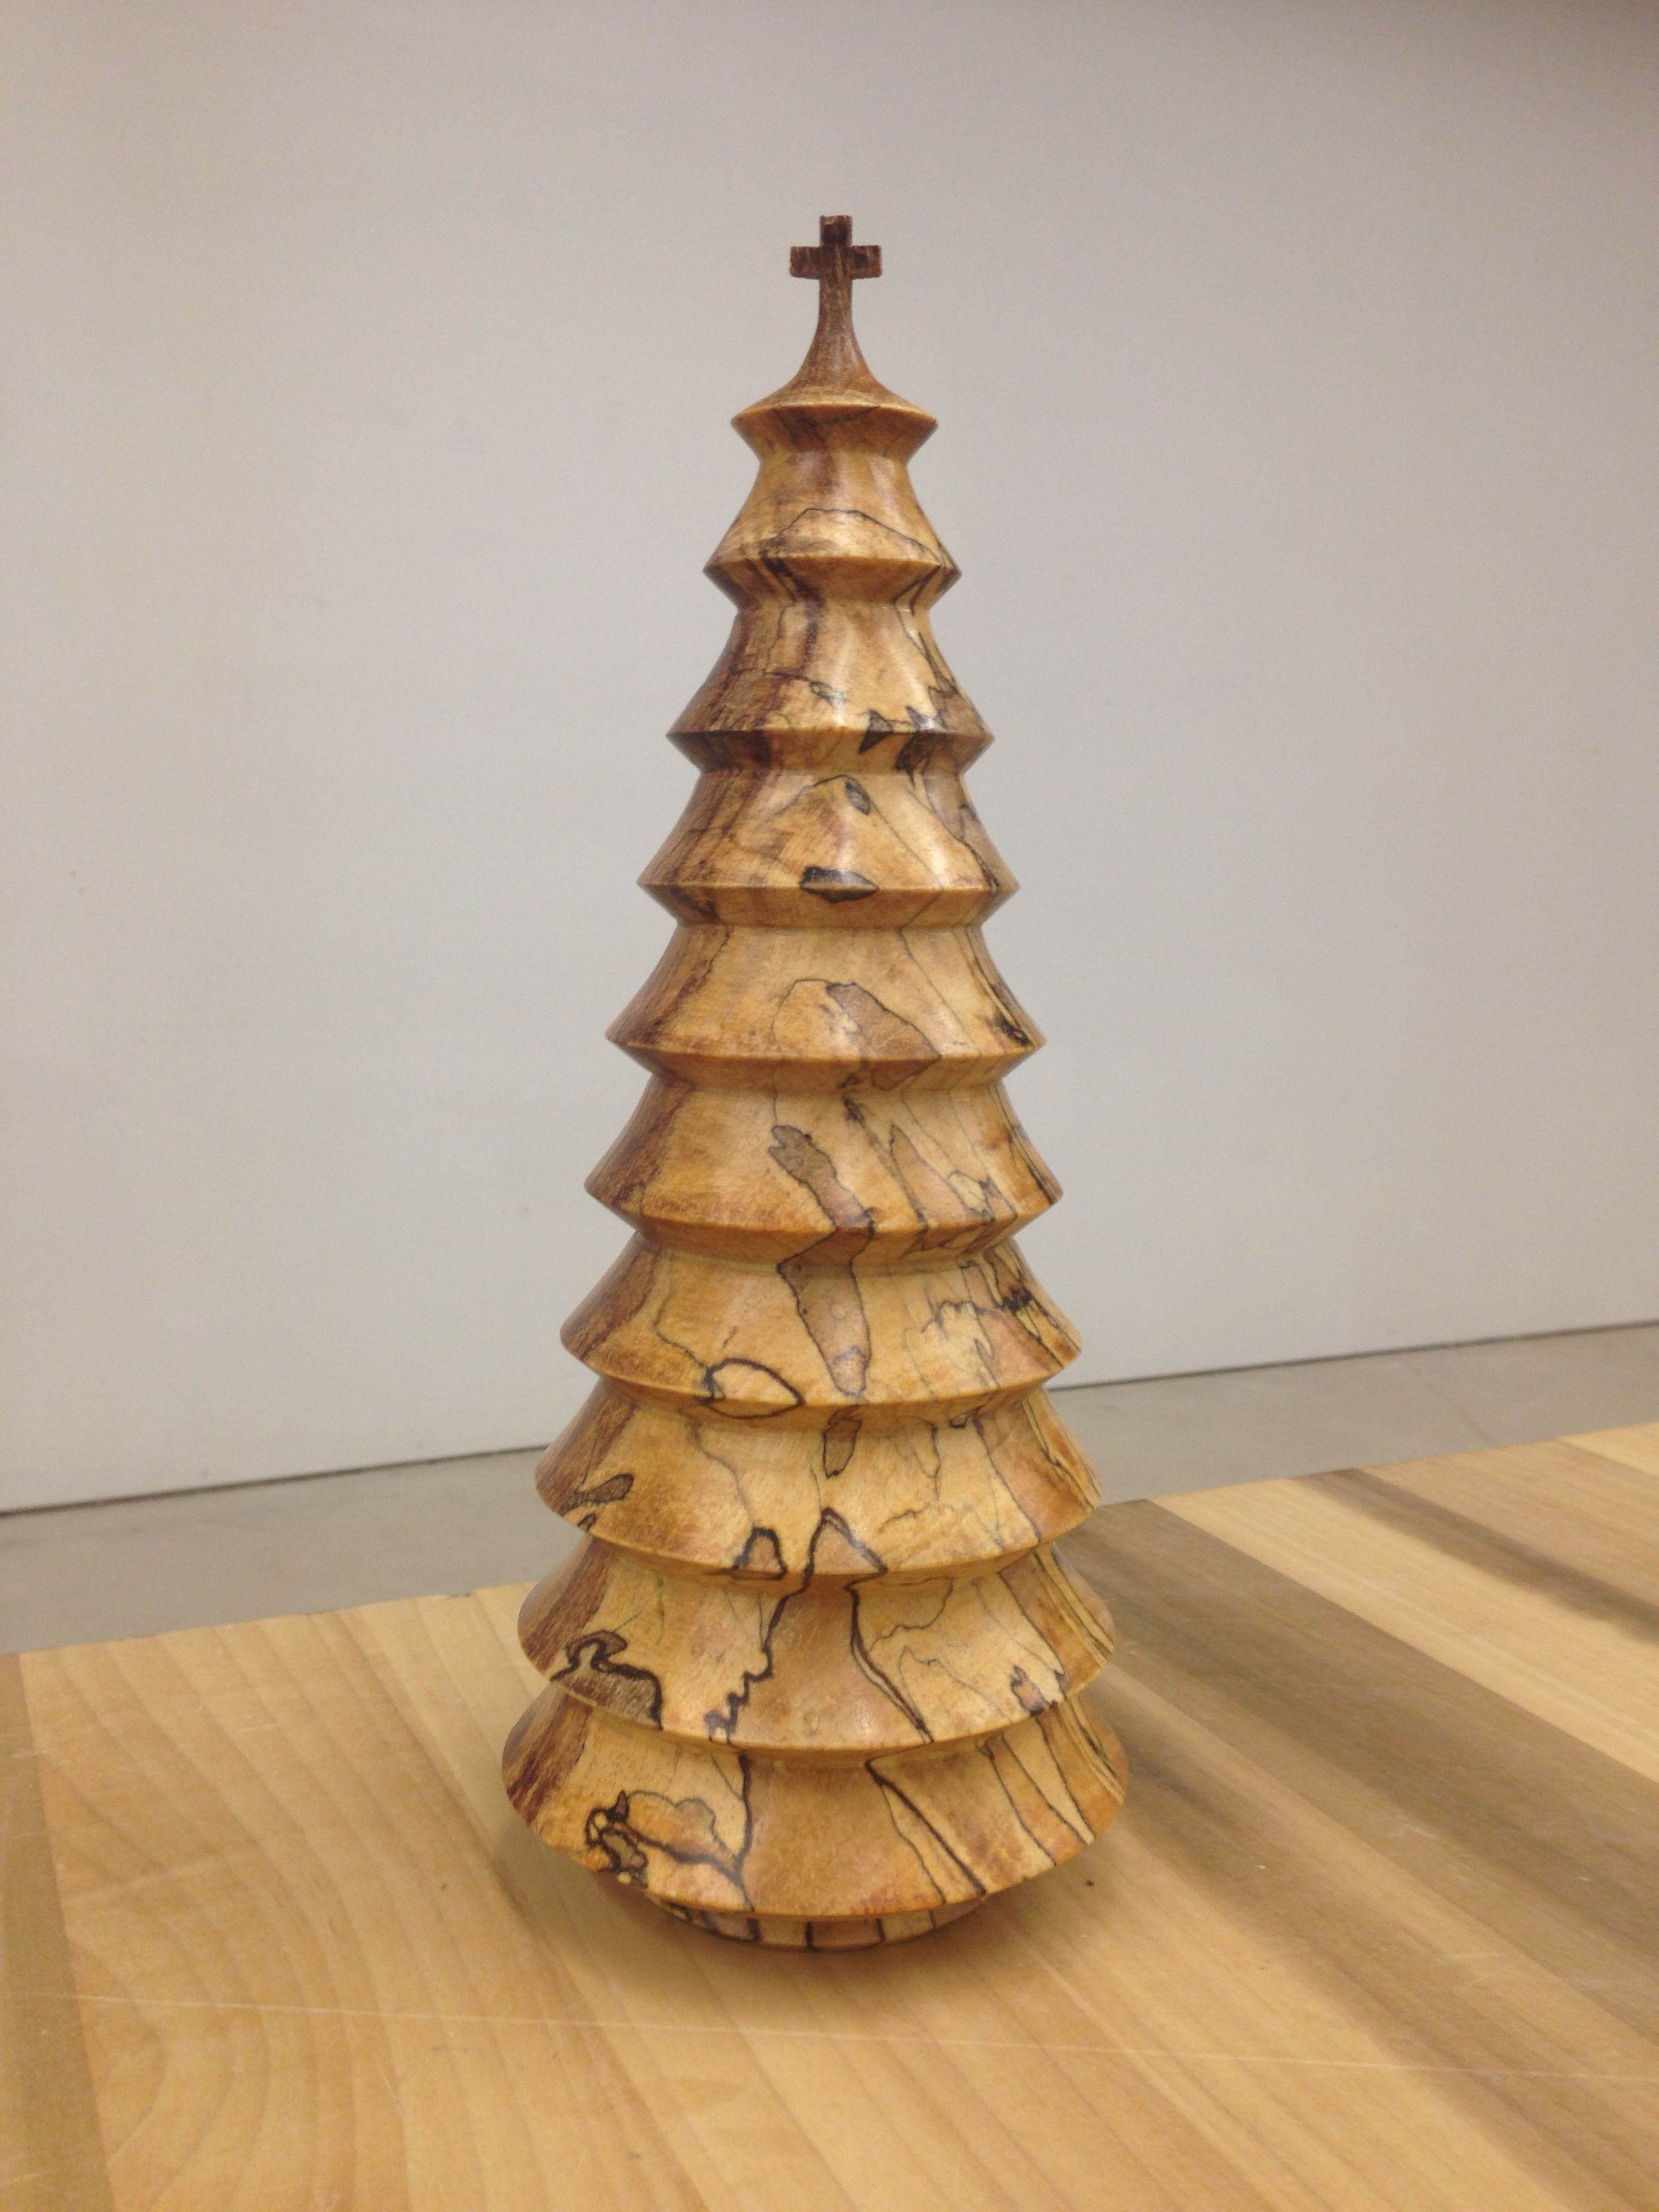 Spalted Pecan christmas tree turned for Jo Ann Yancy for ...